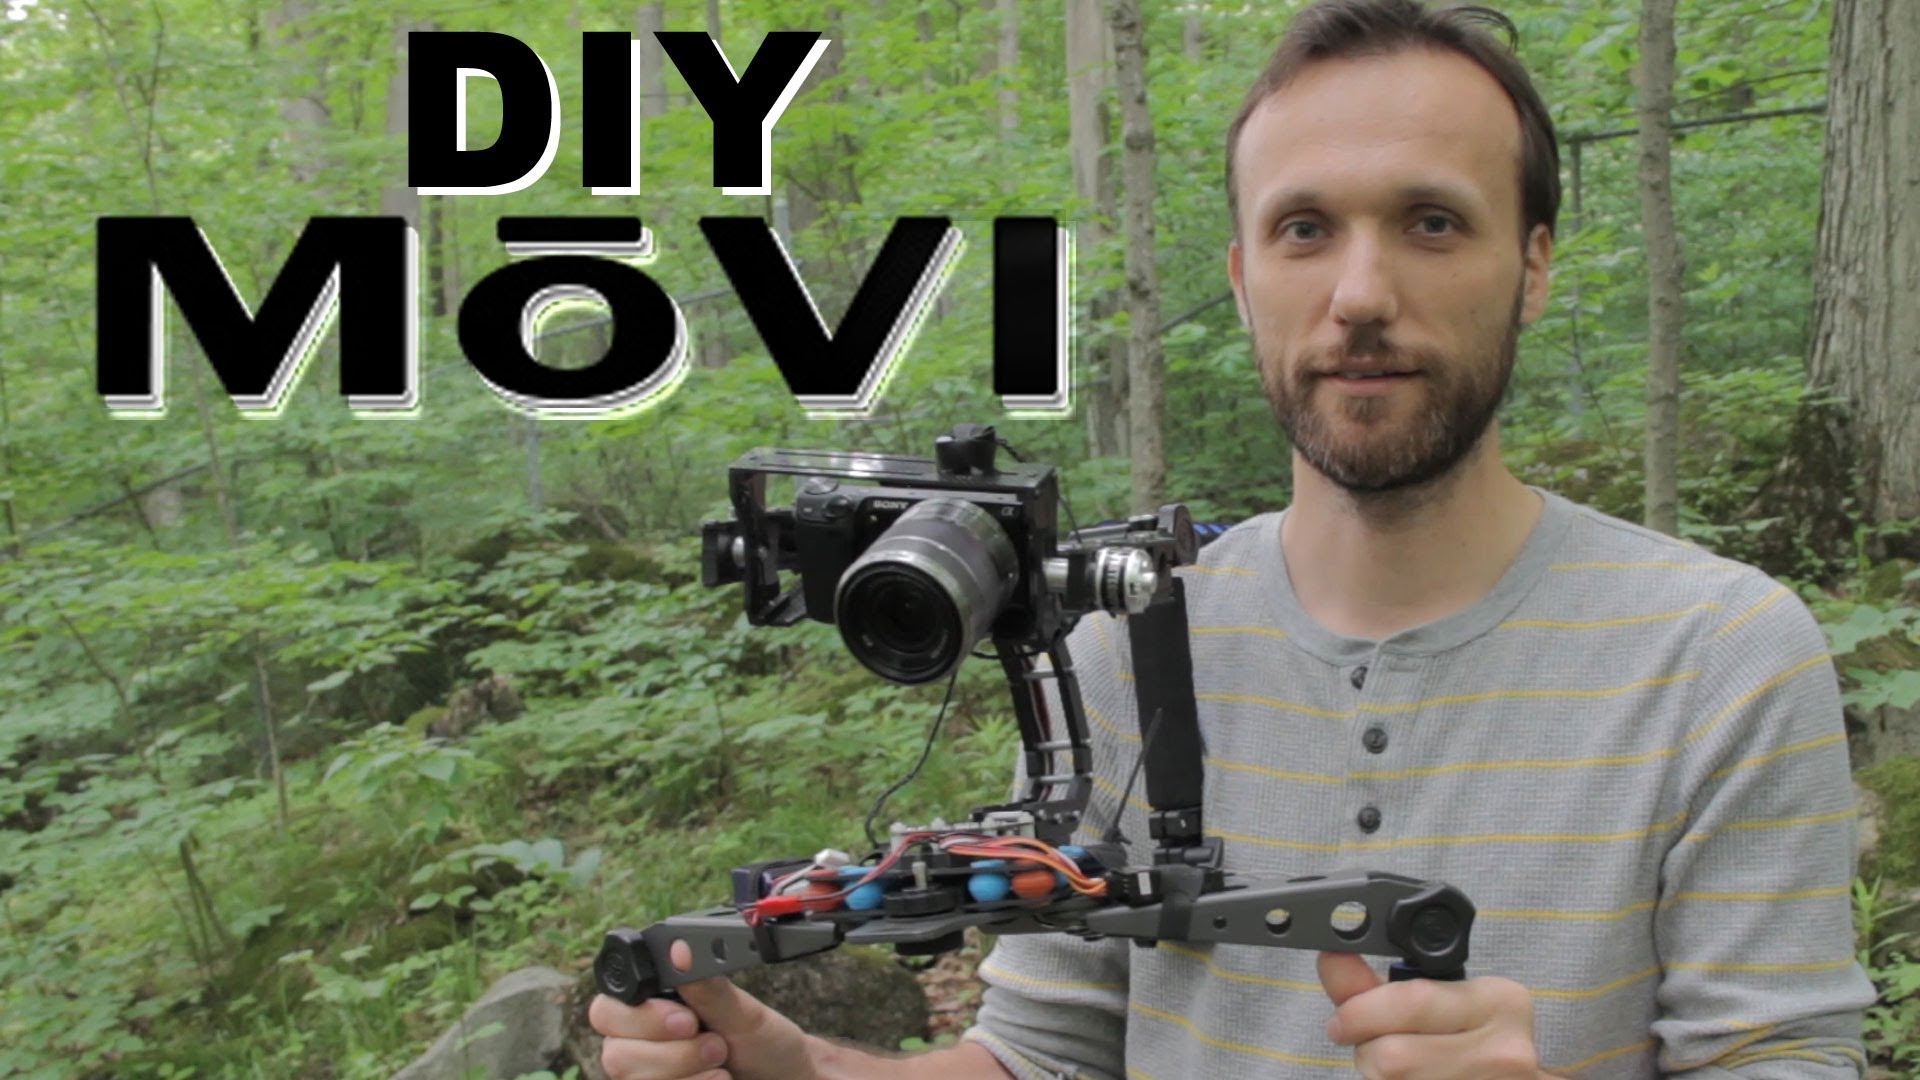 Build your own DIY Digital Stabilized Camera Gimbal